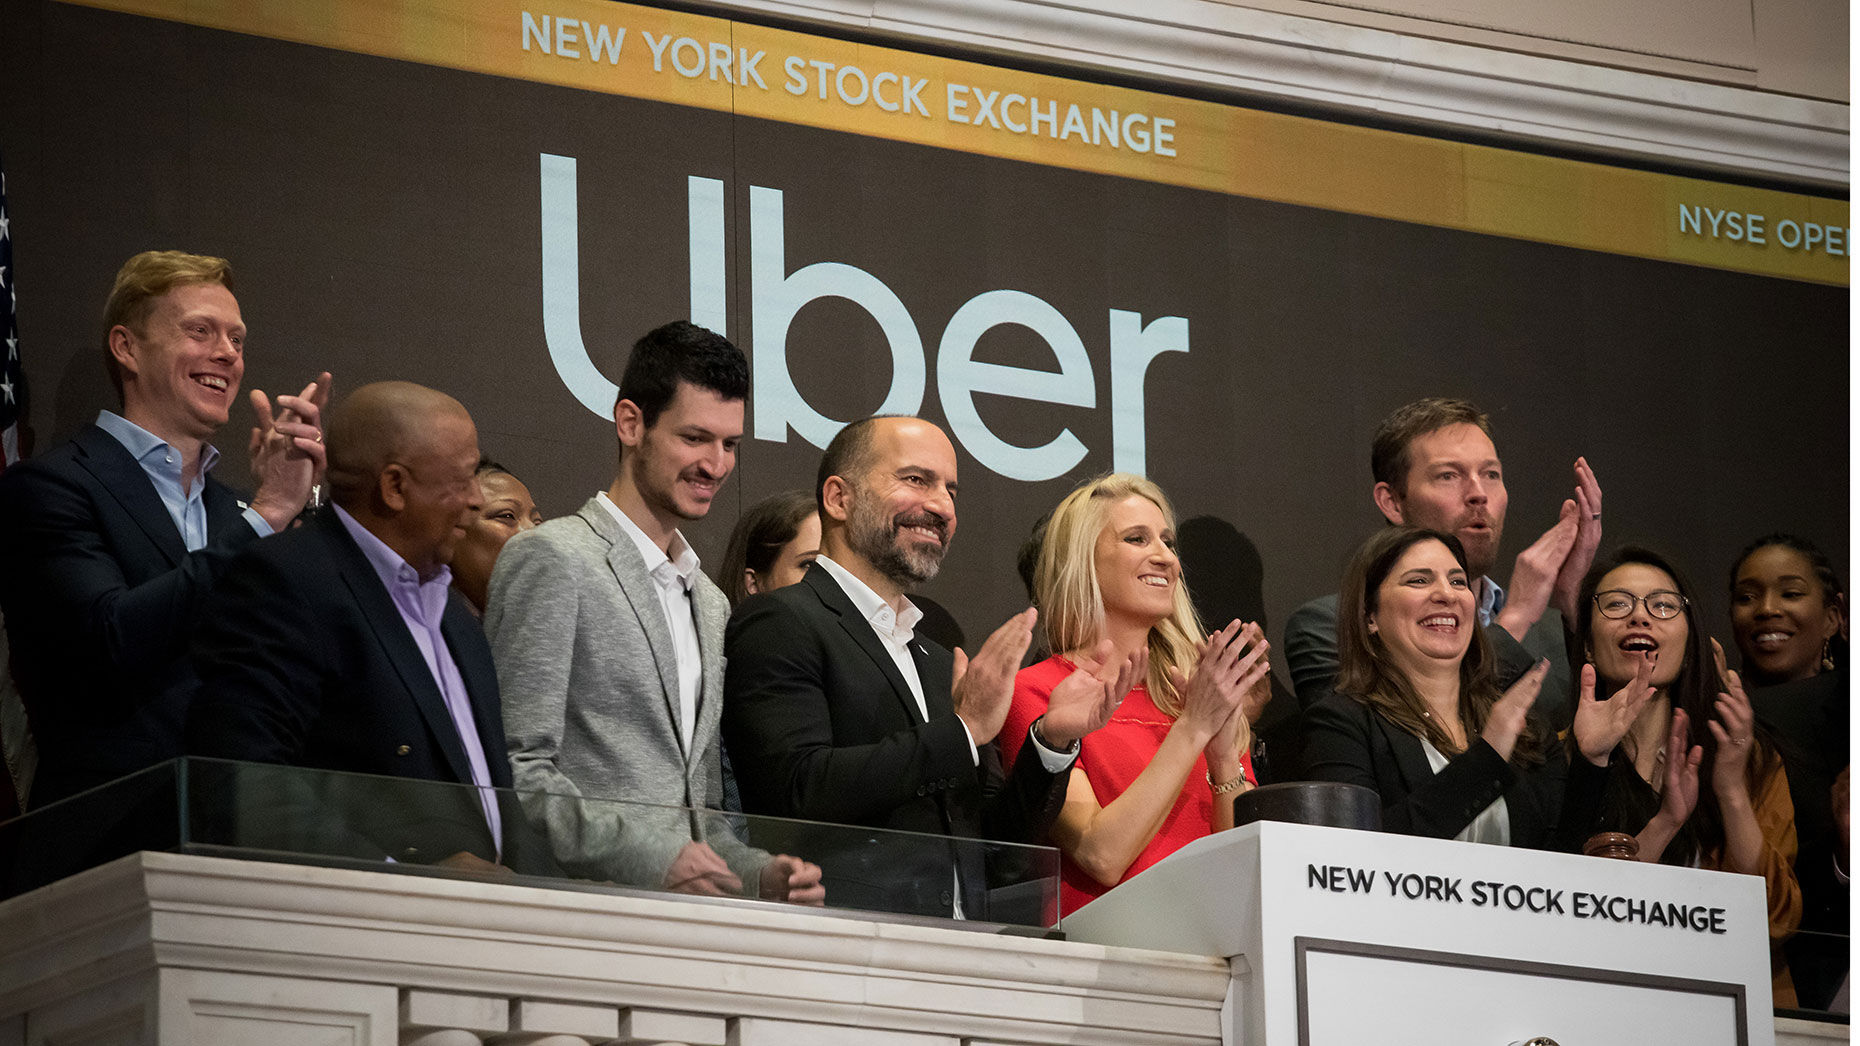 Uber CEO Dara Khosrowshahi (center) with early Uber employee Austin Geidt (wearing red) and other Uber employees and drivers. Photo by Bloomberg.